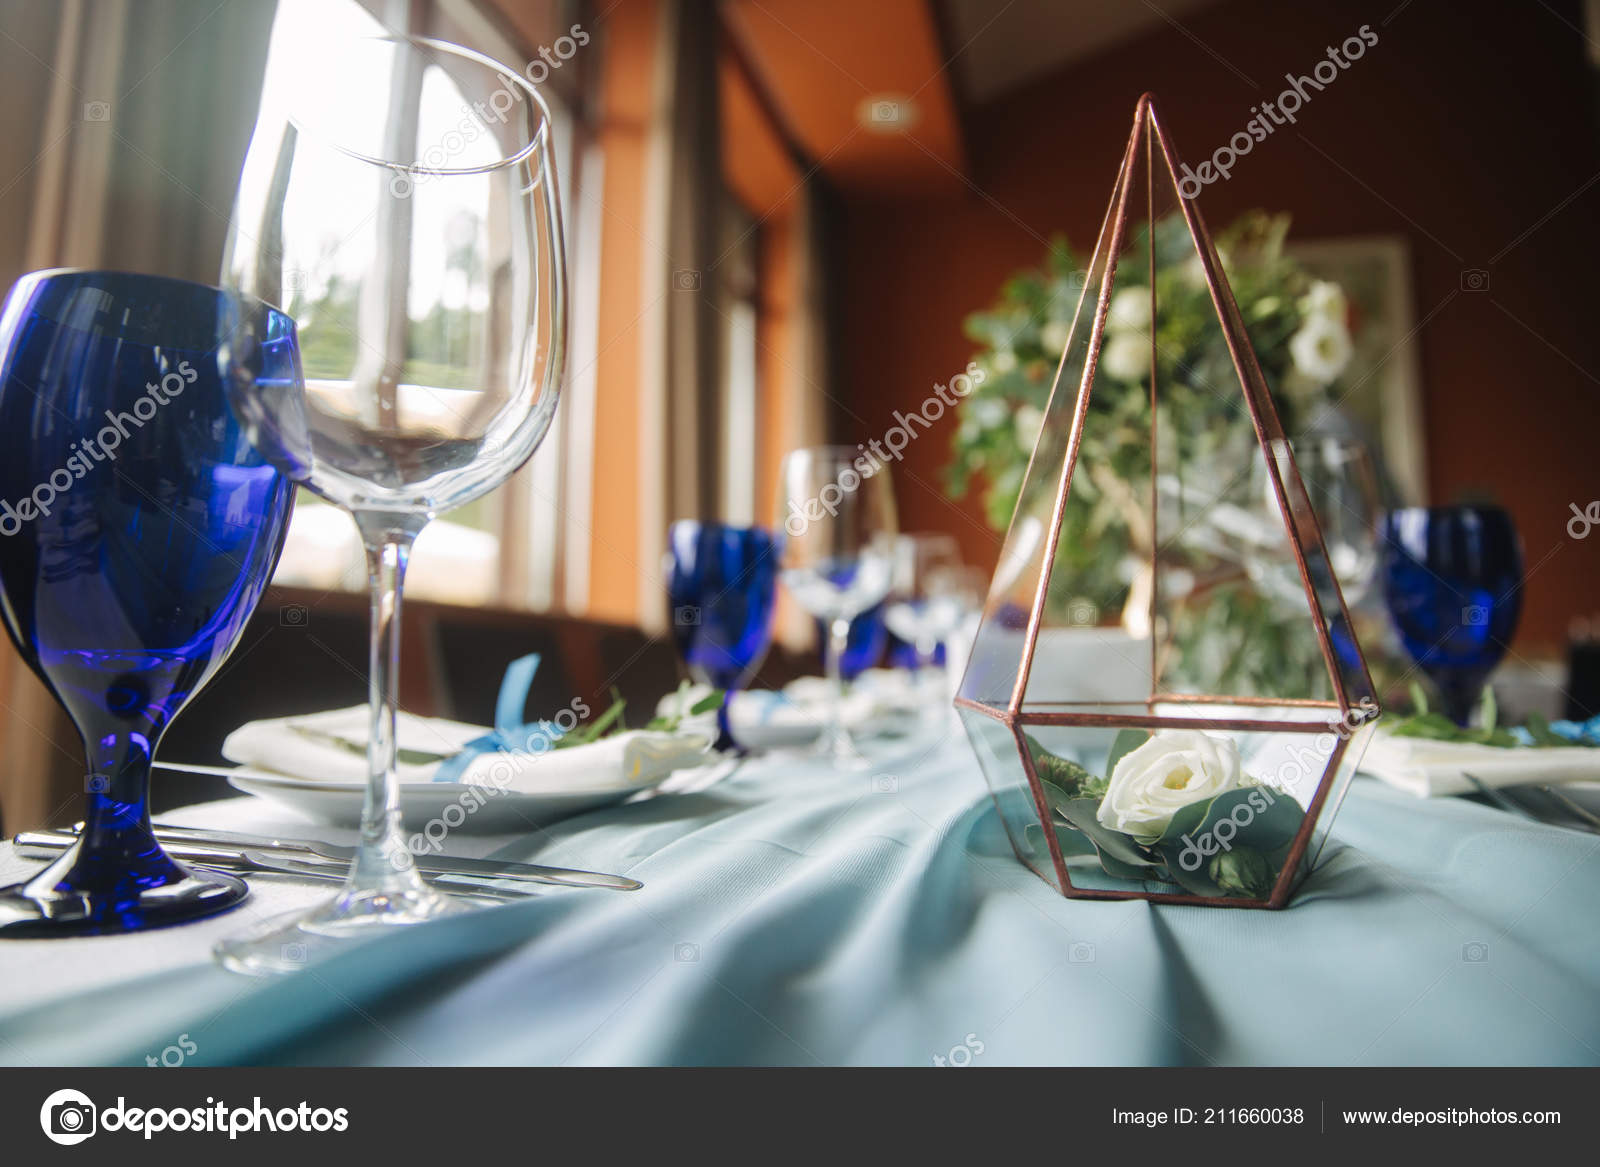 Elements Of Wedding Decoration In Restaurant Green And Blue Color Stock Photo C Gritsiv Foto 211660038